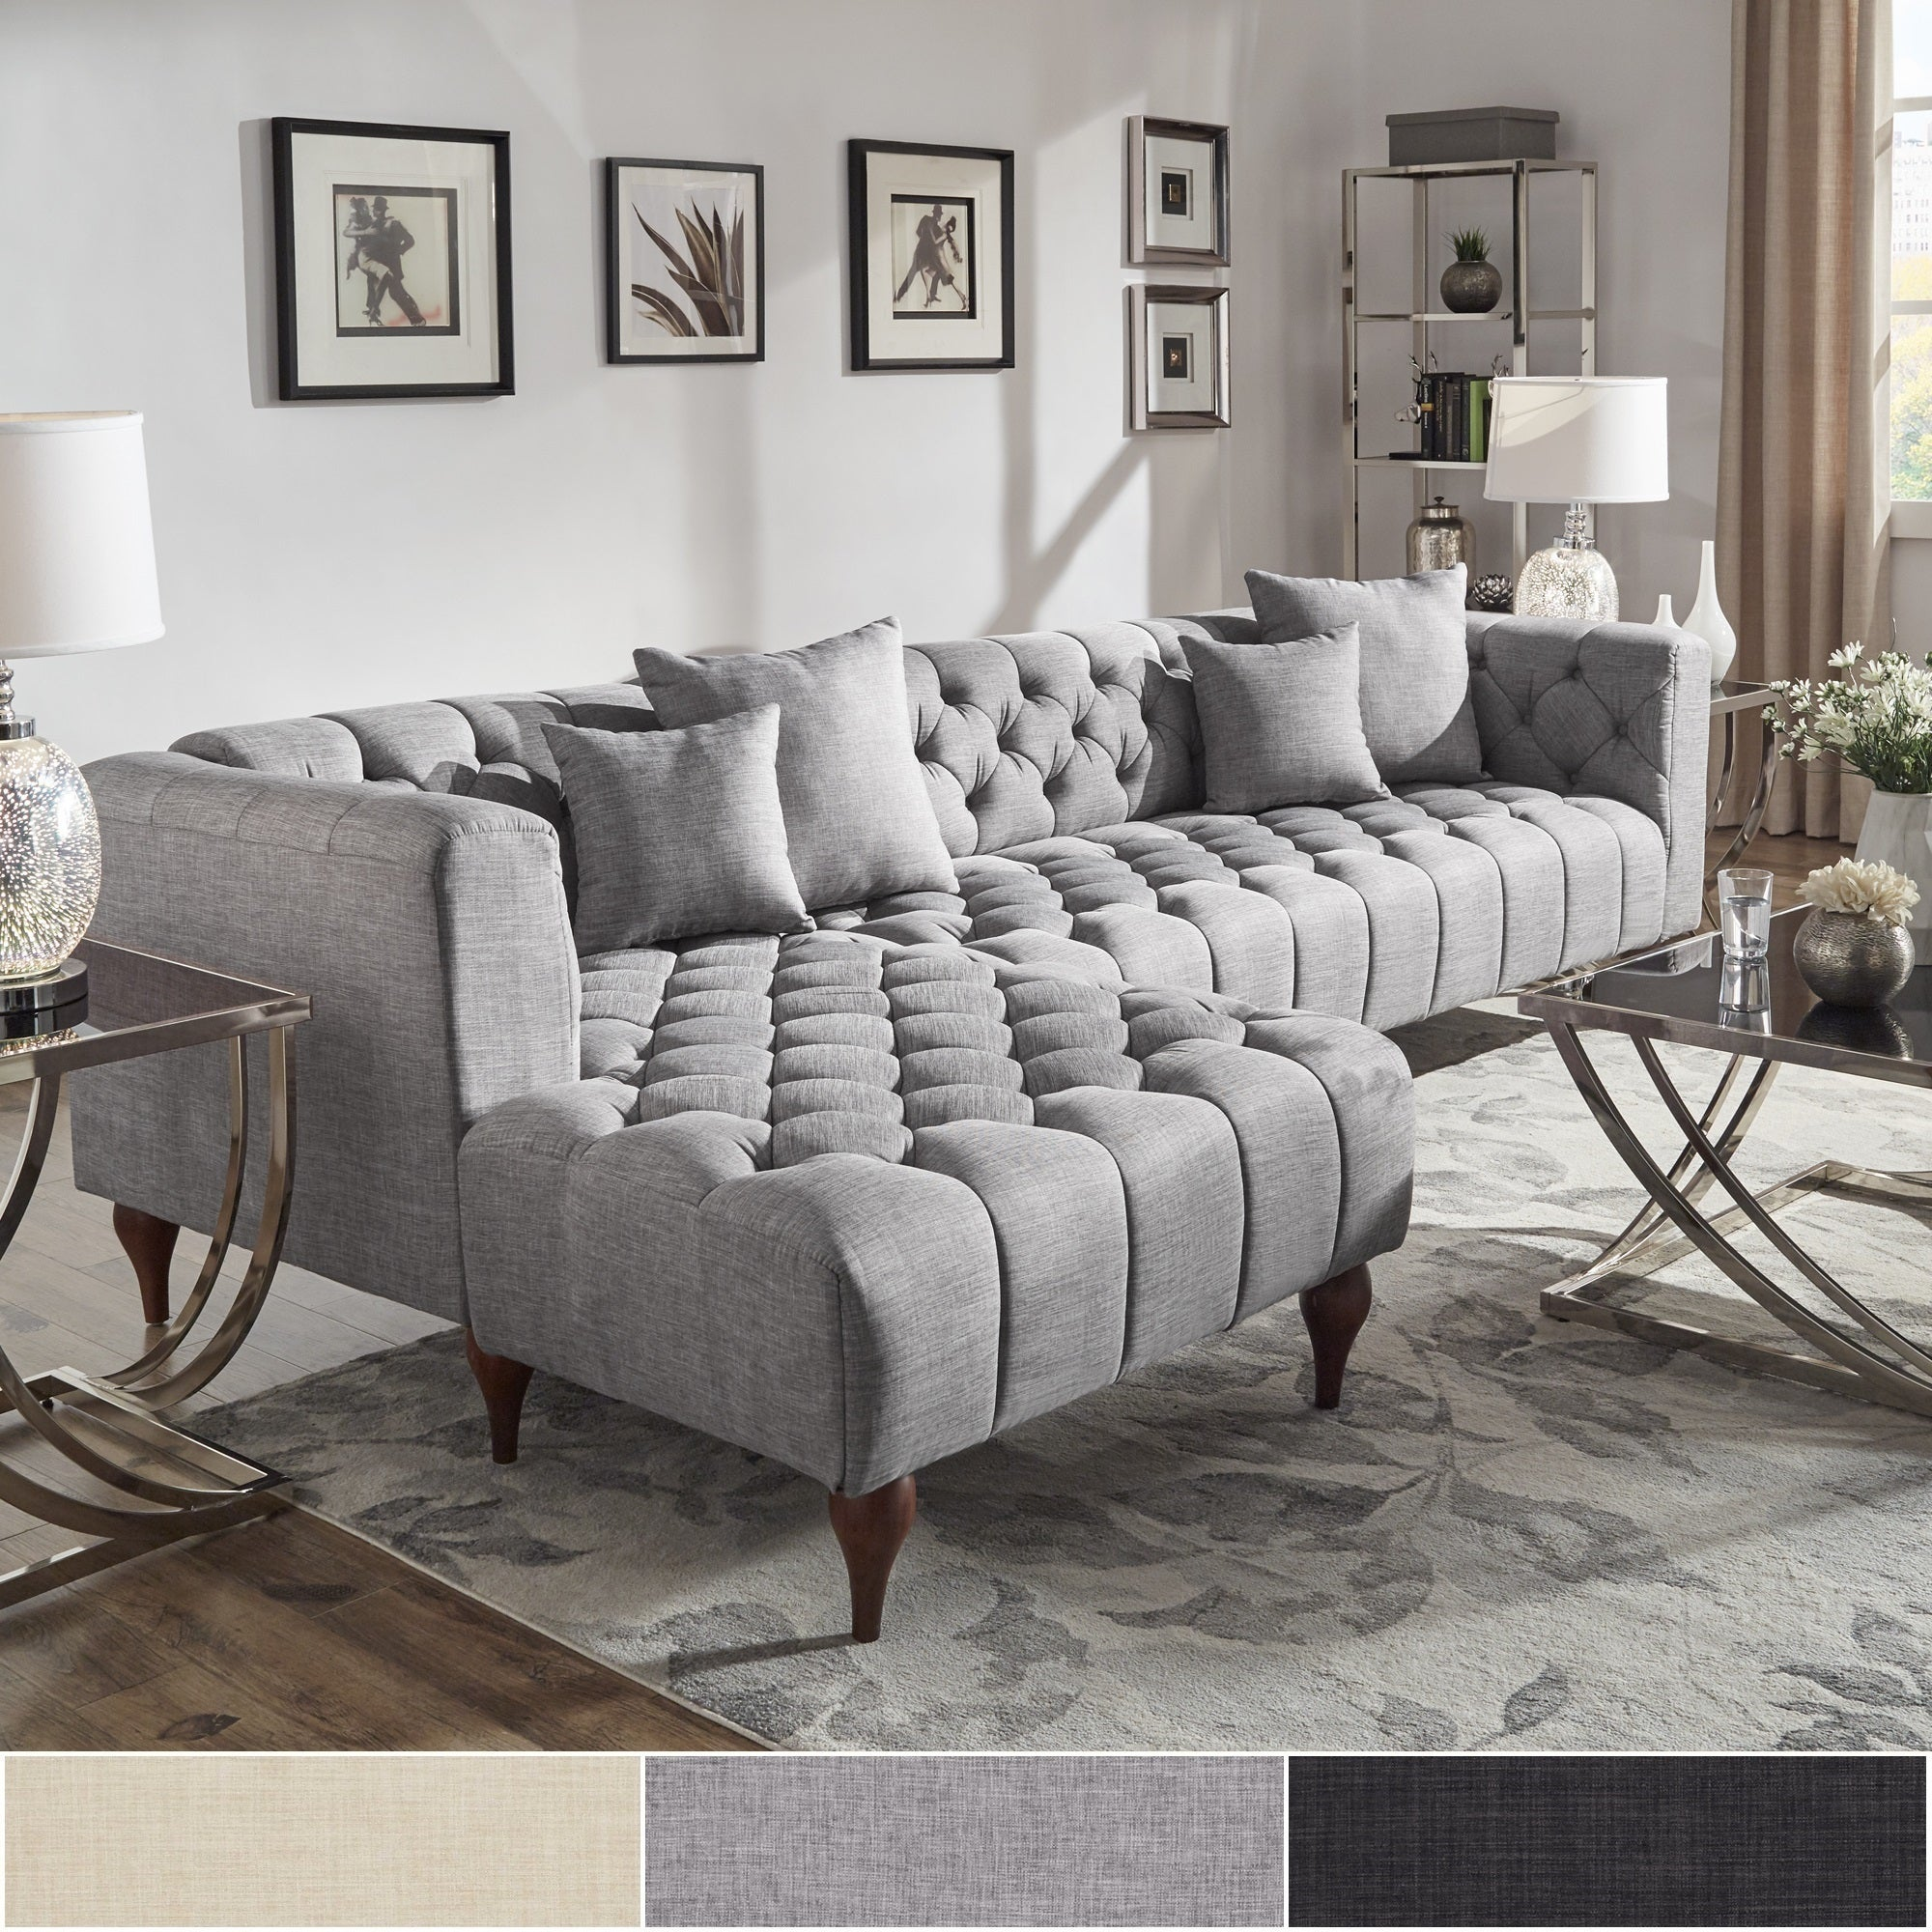 Danise Tufted Linen Upholstered Tuxedo Arm 4-Seat Sofa and Chaise by iNSPIRE Q Artisan (Right Facing - Grey Linen)